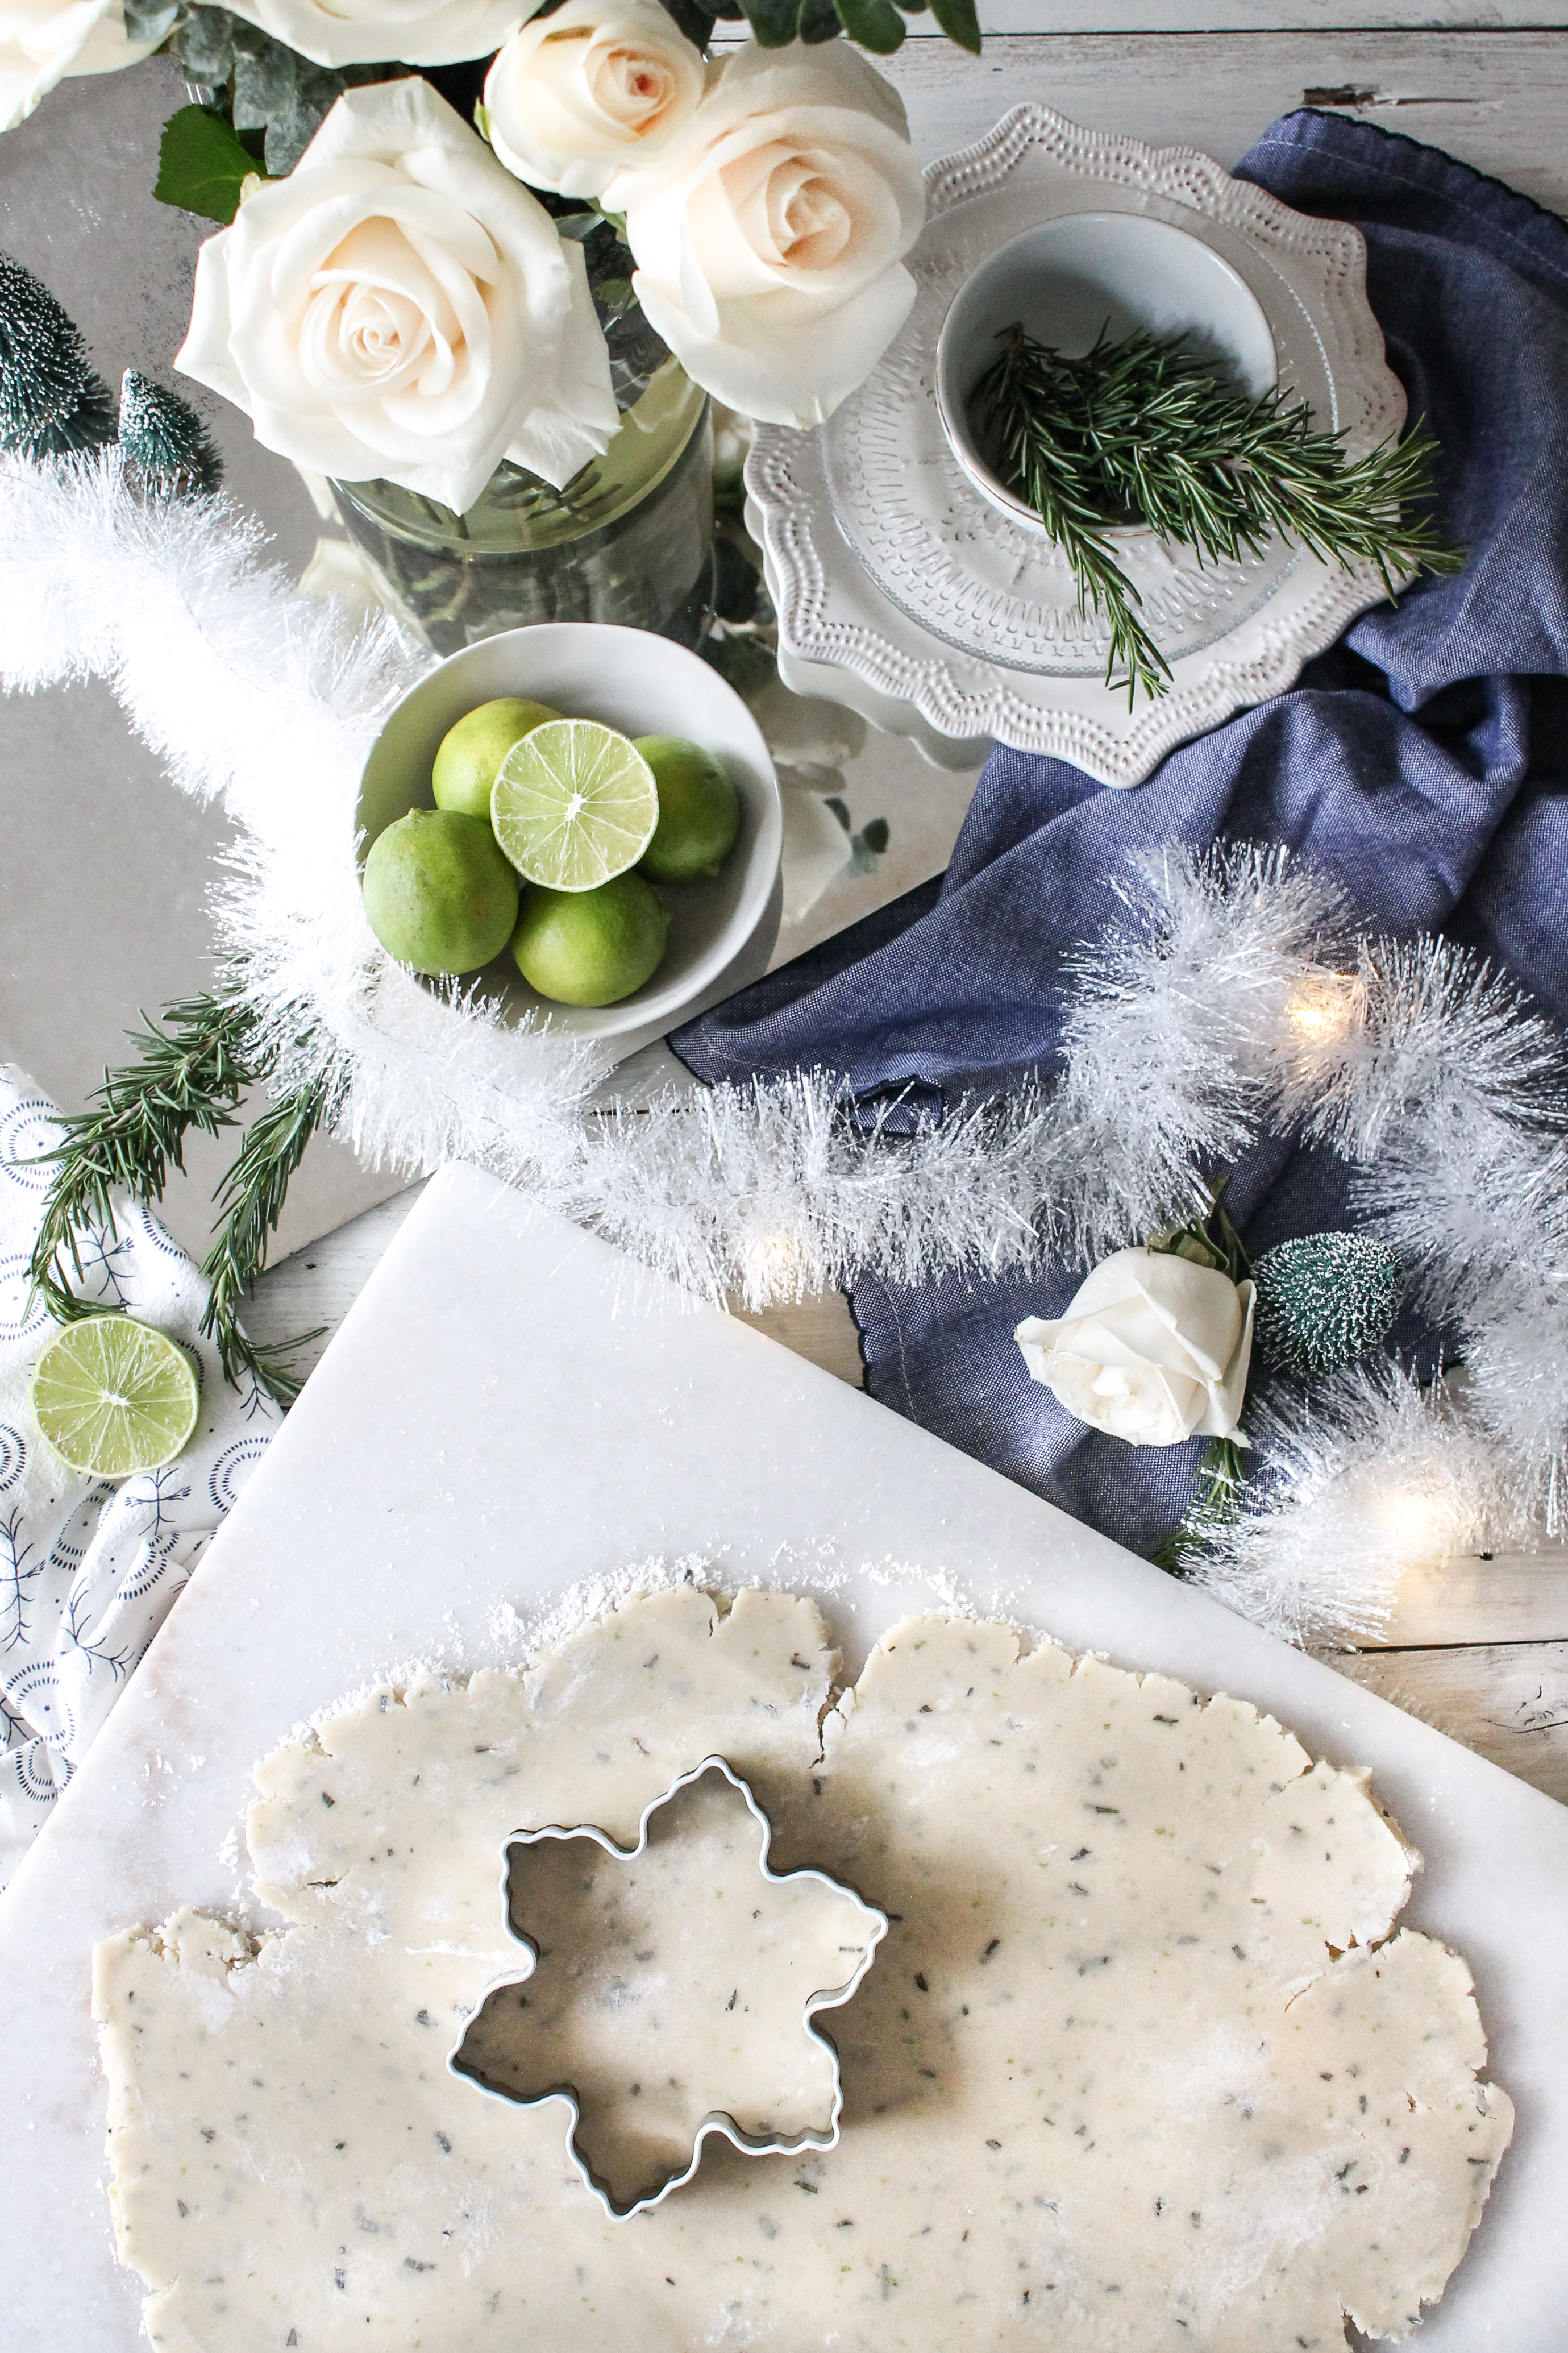 Rosemary Lime Shortbread Cookies are just what you need to get you through the early winter blues! These tasty treats still feel like Christmas, but with a fresh zing.